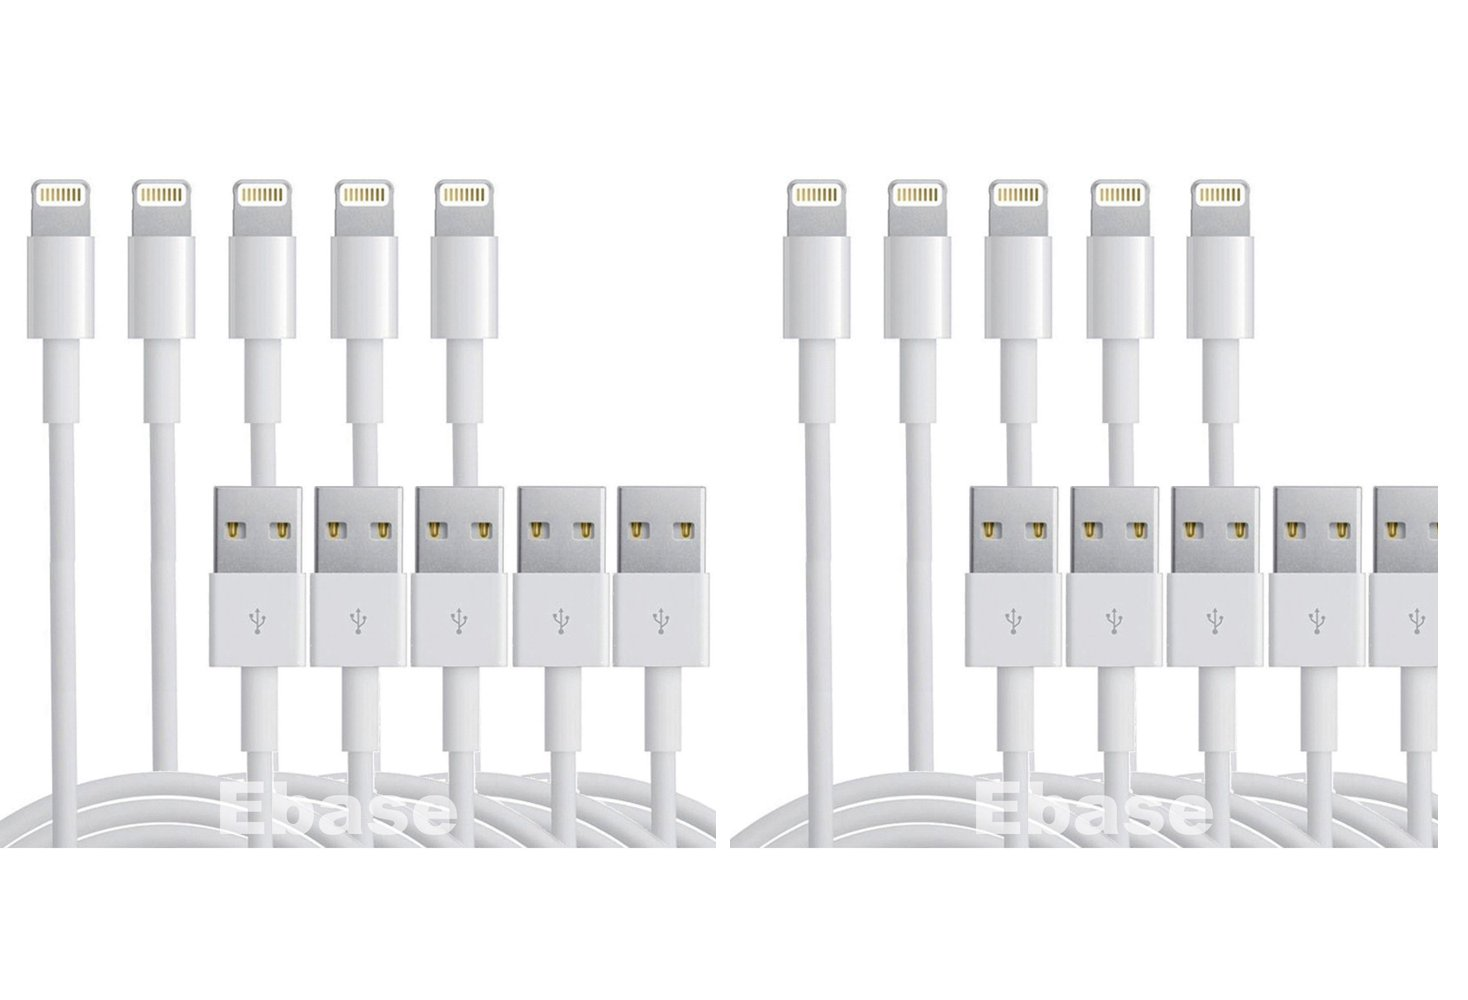 10 x 8 Pin USB Ligtning Charger Cable Cord Lead For Apple ipad5 air iPhone5 5s 5c touch 5 iOS7